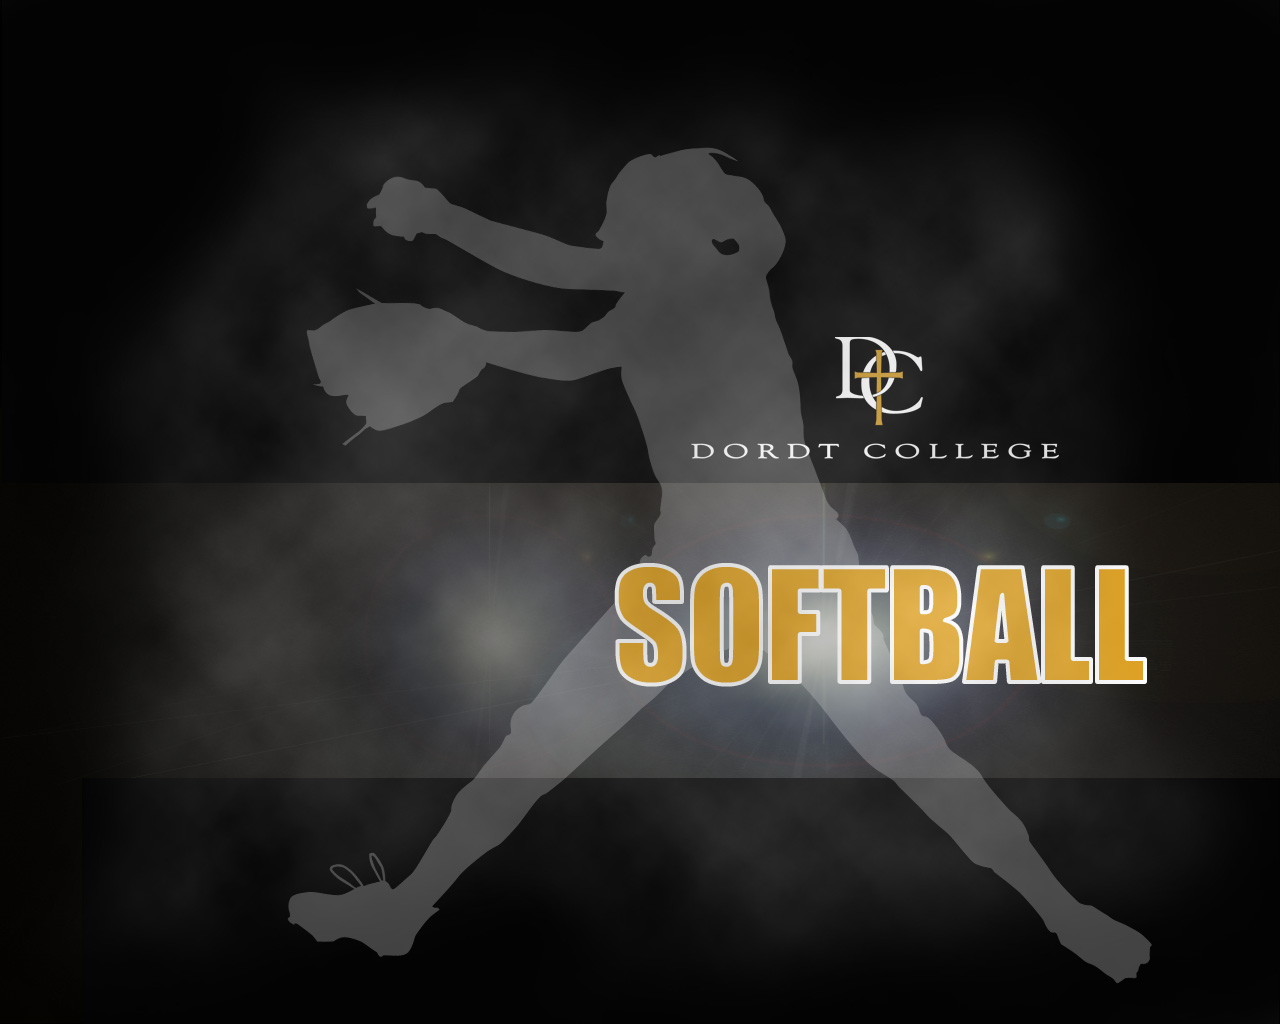 Pics photos related pictures softball wallpaper softball desktop - Softball Desktop Backgrounds Desktop Image